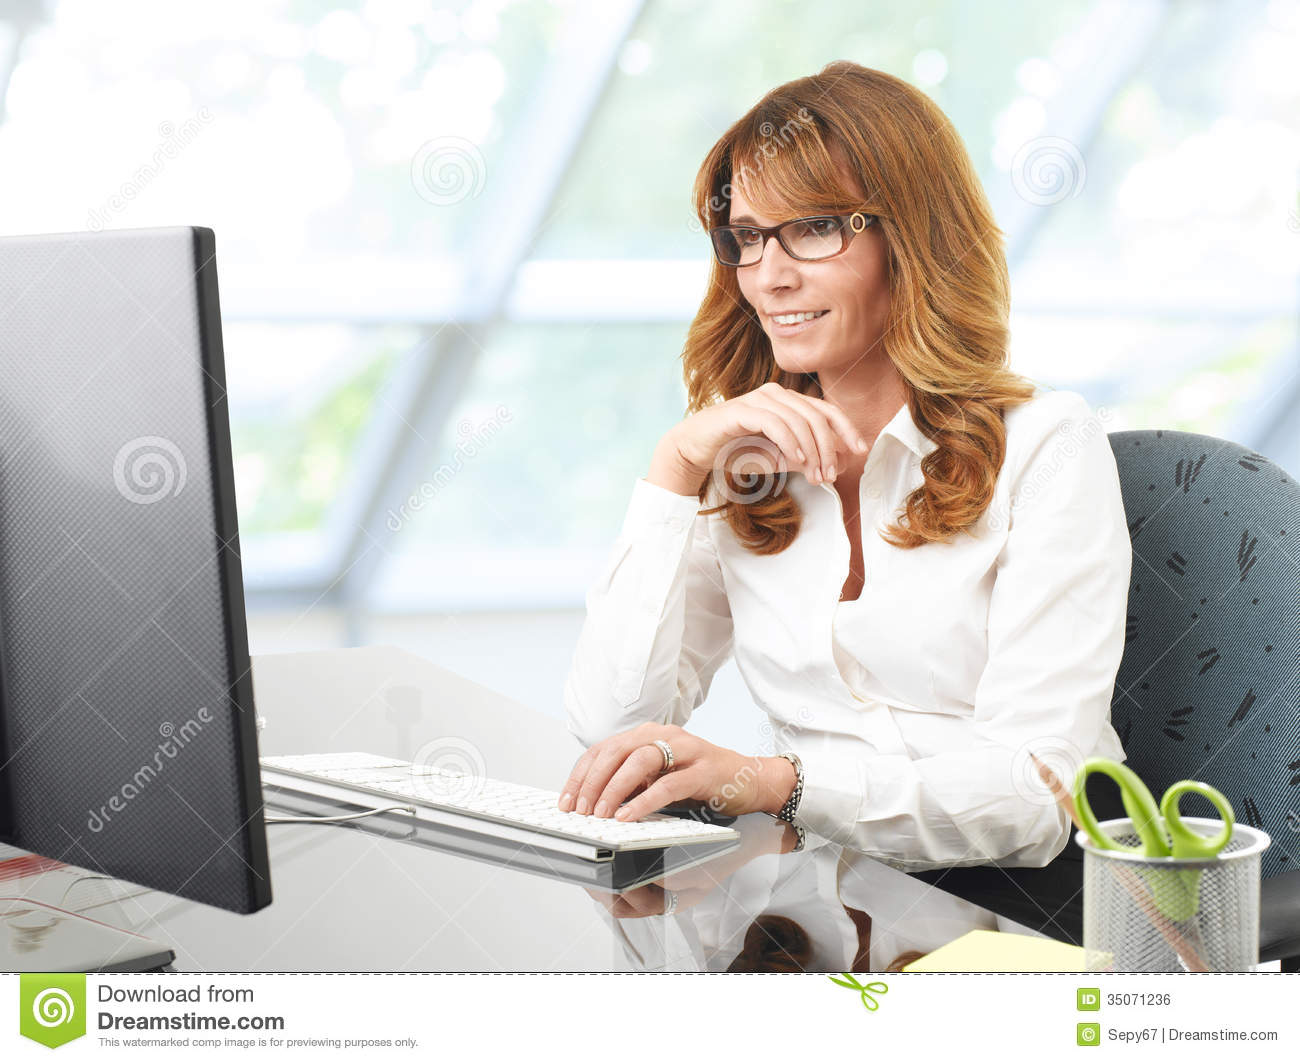 Free Stock Image: Smiling businesswoman at office desk with a computer